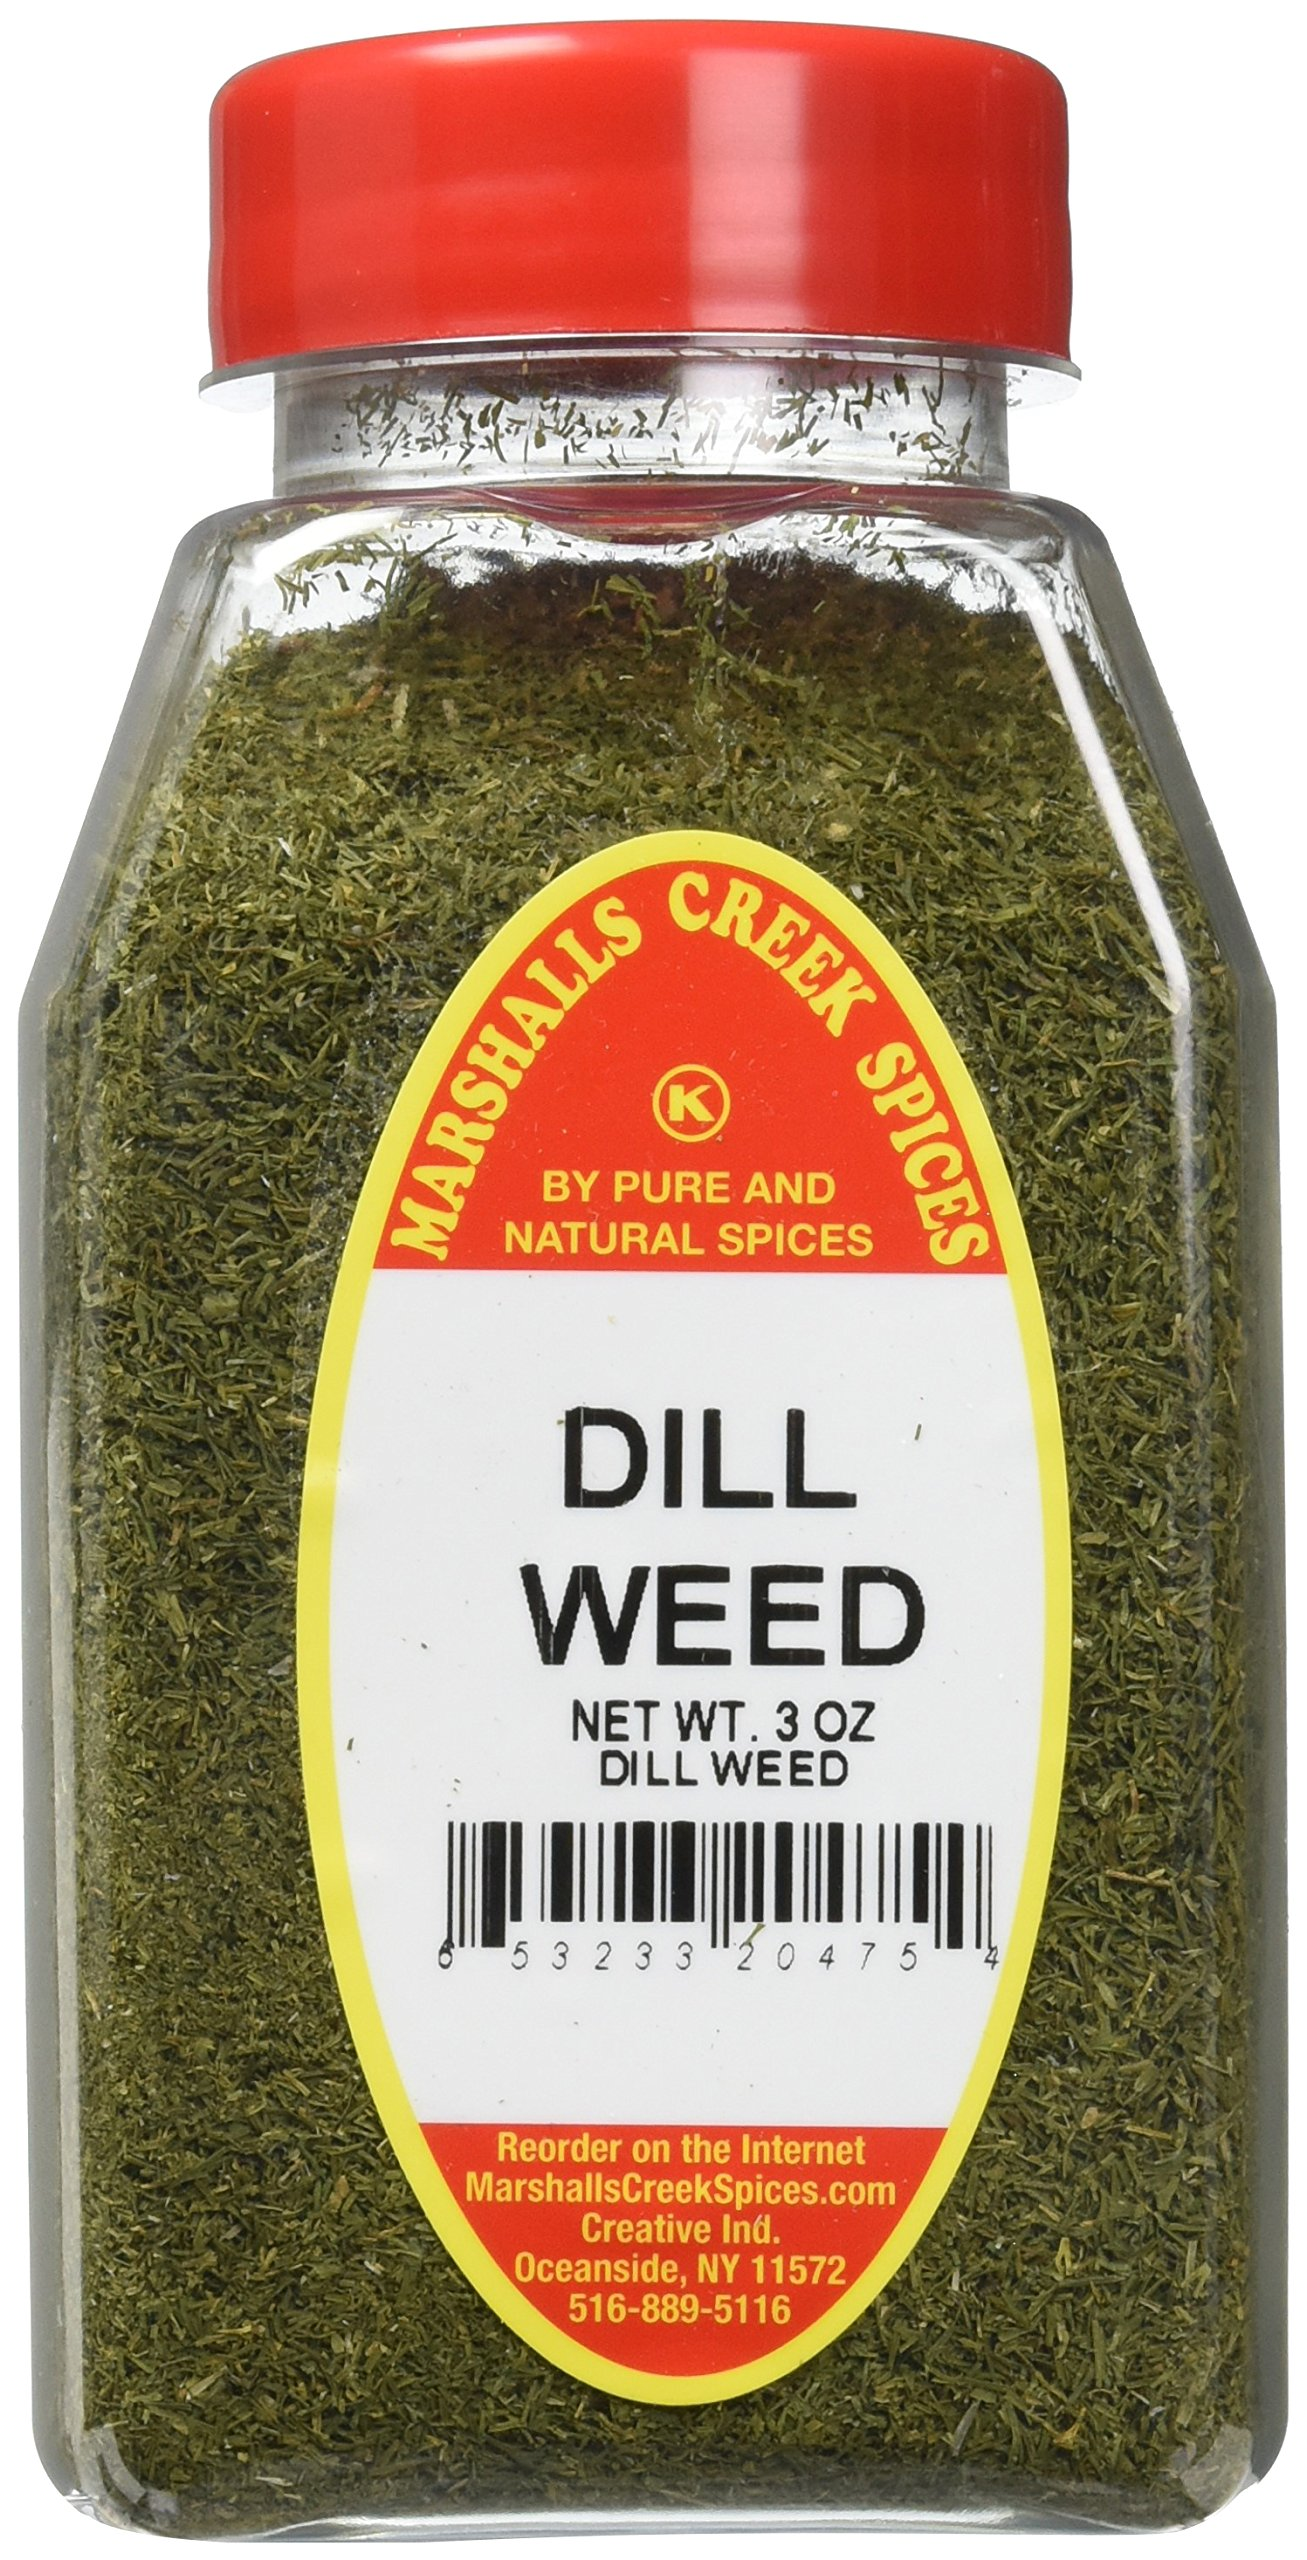 Marshalls Creek Kosher Spices DILL WEED 3 oz